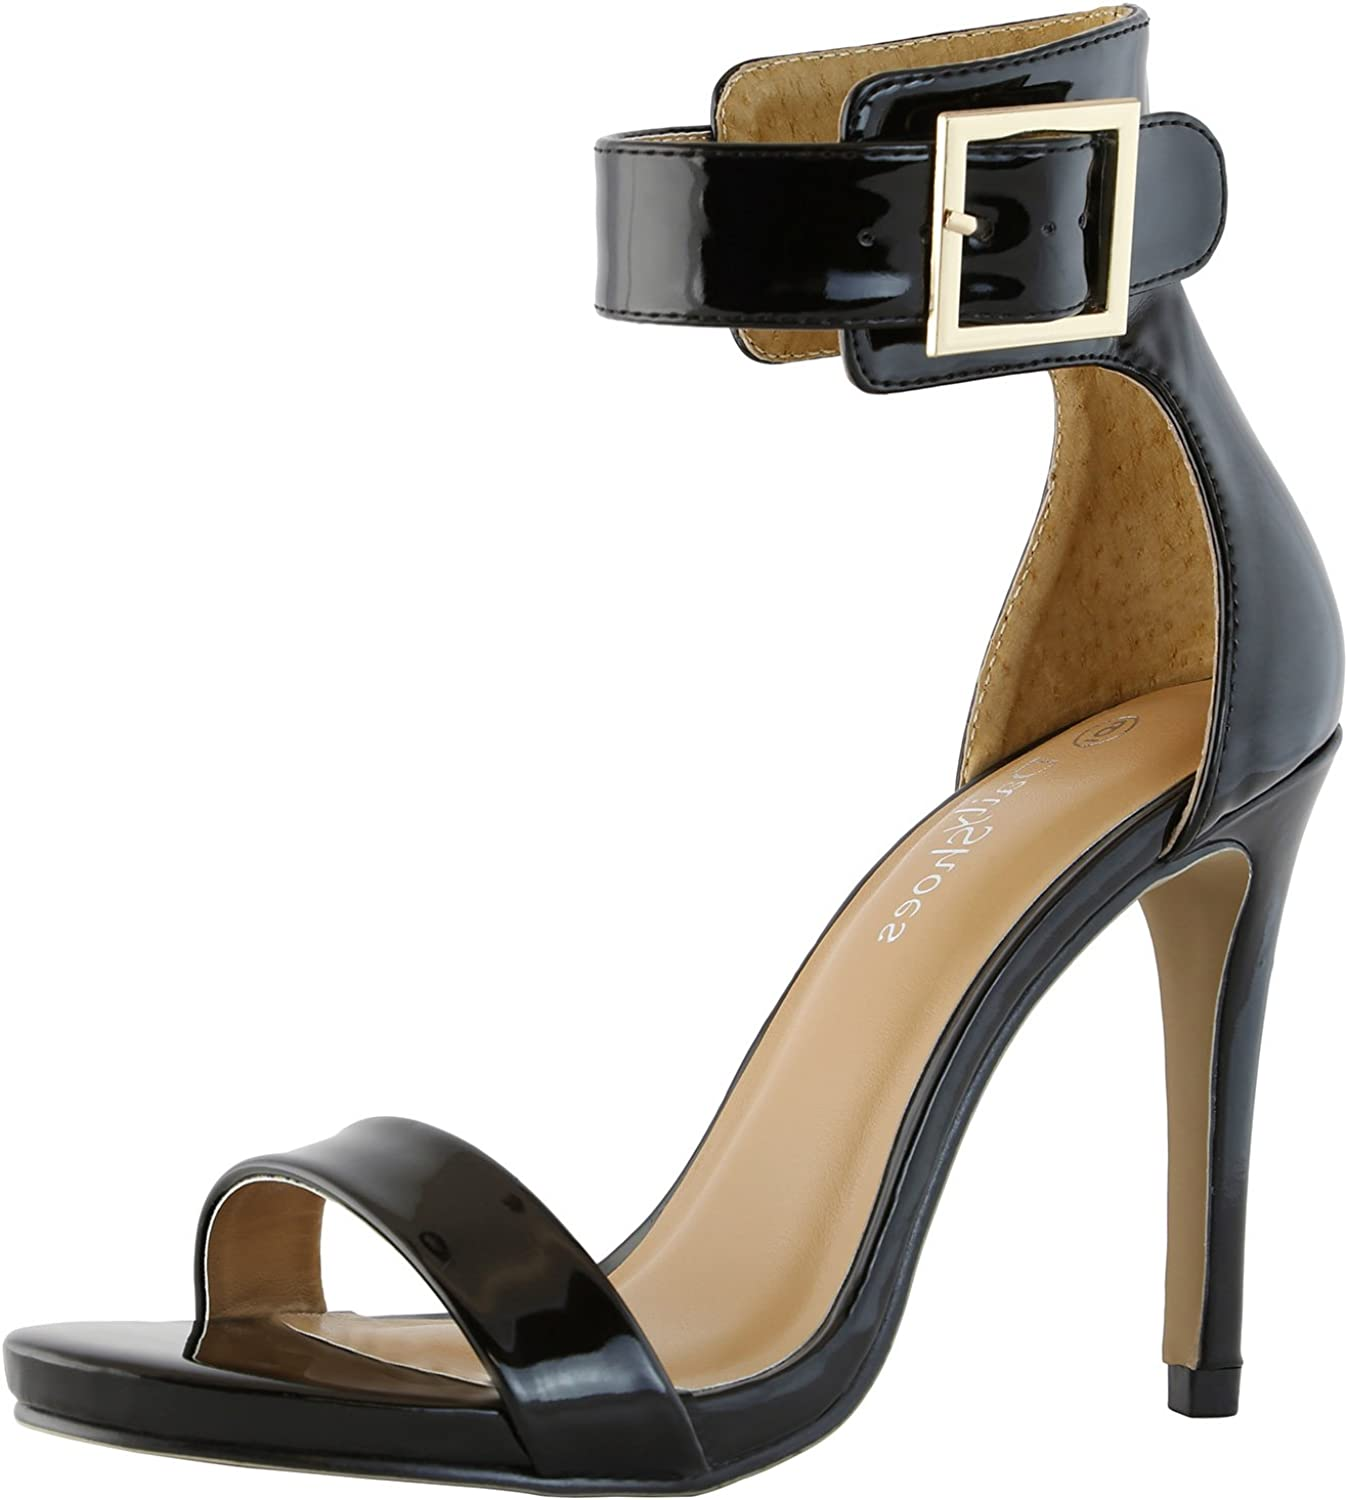 Dailyshoes Women's Stiletto Heels Open Toe Ankle Buckle Strap Platform High Heel Evening Party Dress Casual Sandal shoes